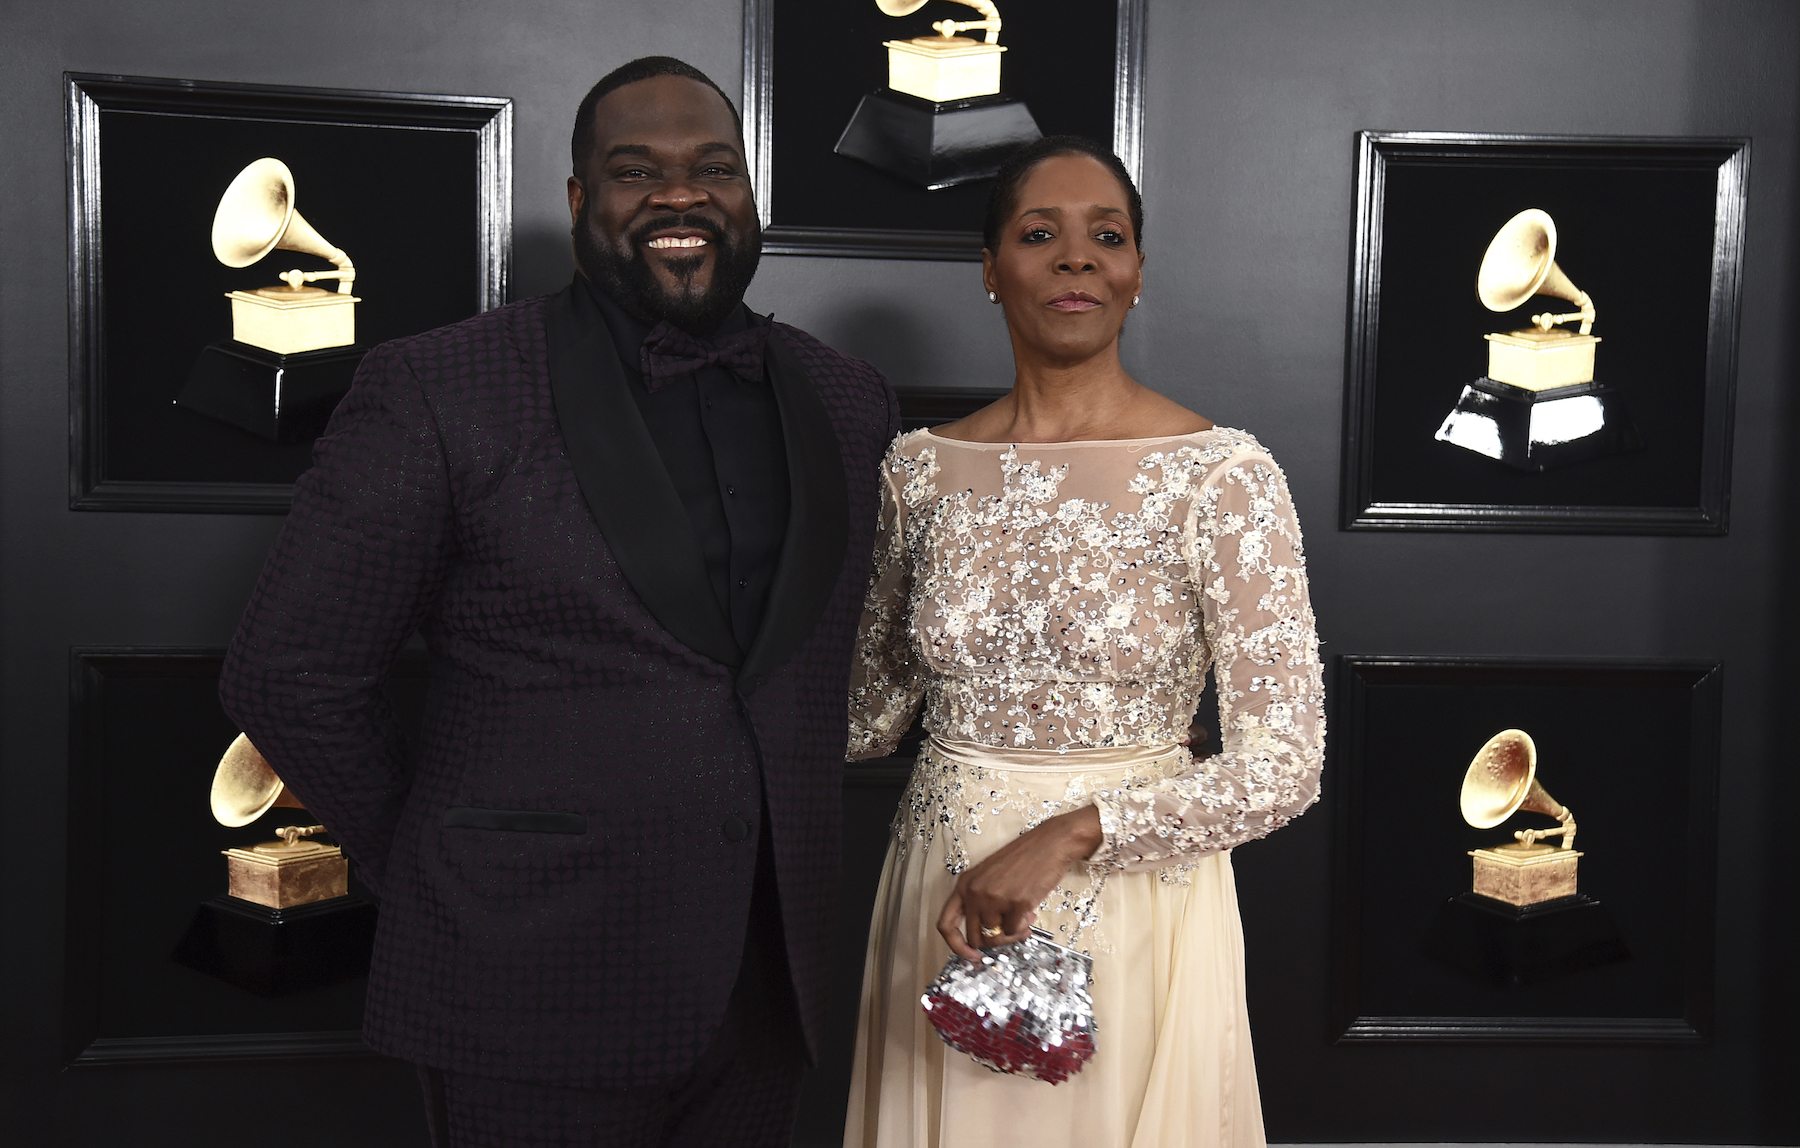 <div class='meta'><div class='origin-logo' data-origin='AP'></div><span class='caption-text' data-credit='Jordan Strauss/Invision/AP'>Phillip Boykin, left, and Felicia Richardson Boykin arrive at the 61st annual Grammy Awards at the Staples Center on Sunday, Feb. 10, 2019, in Los Angeles.</span></div>